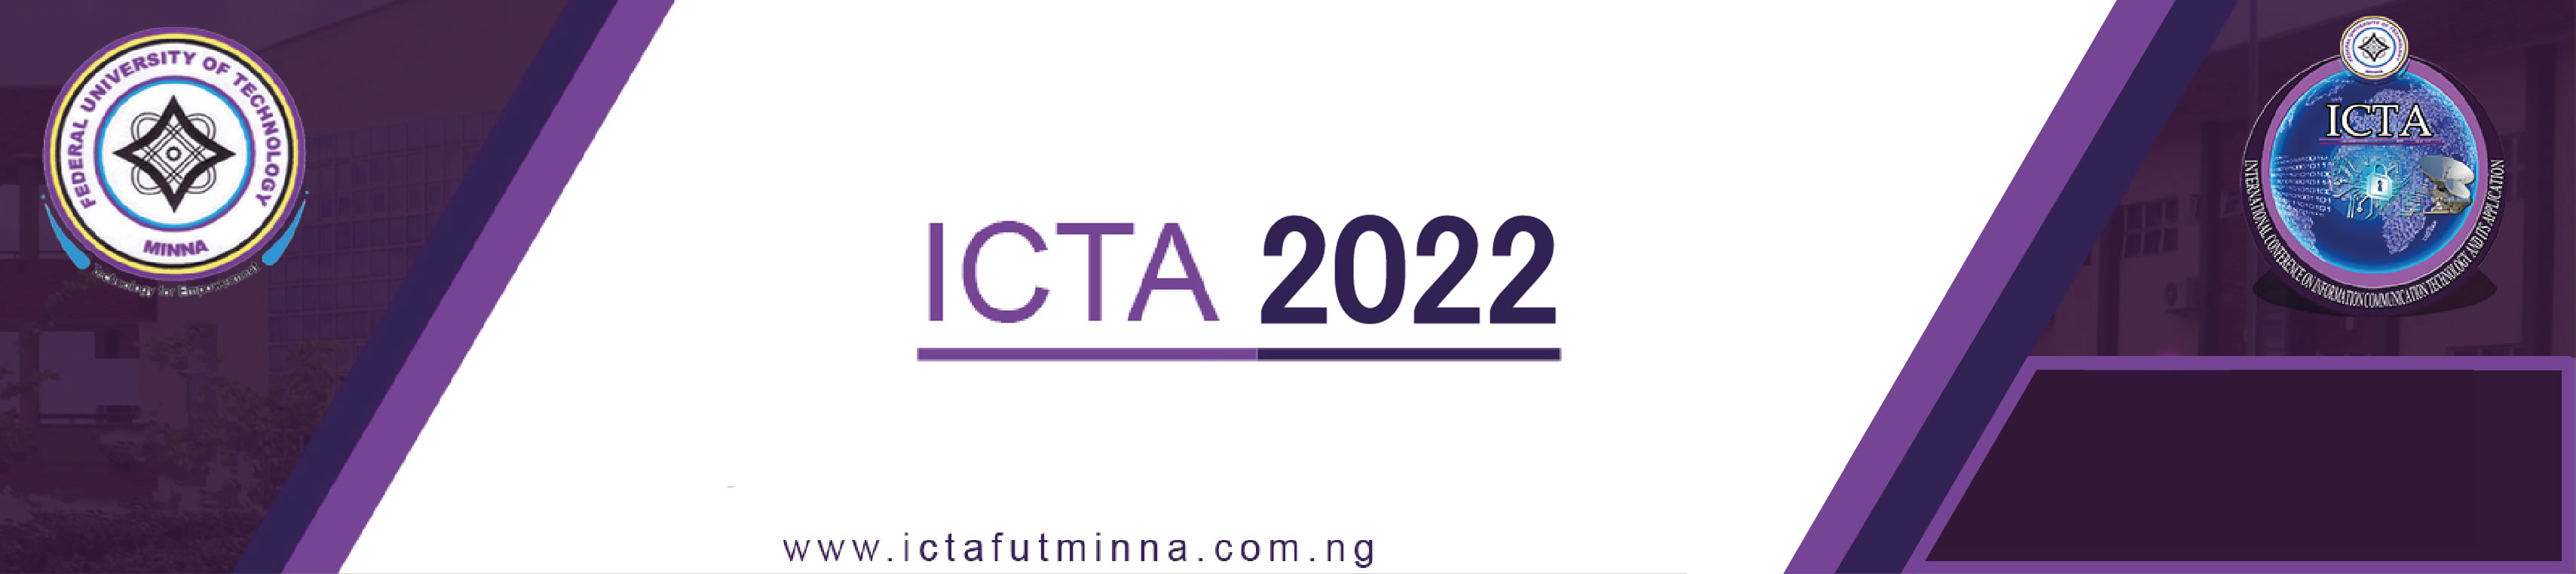 Leveraging Emerging Technology for Sustainable Digitisation of Society